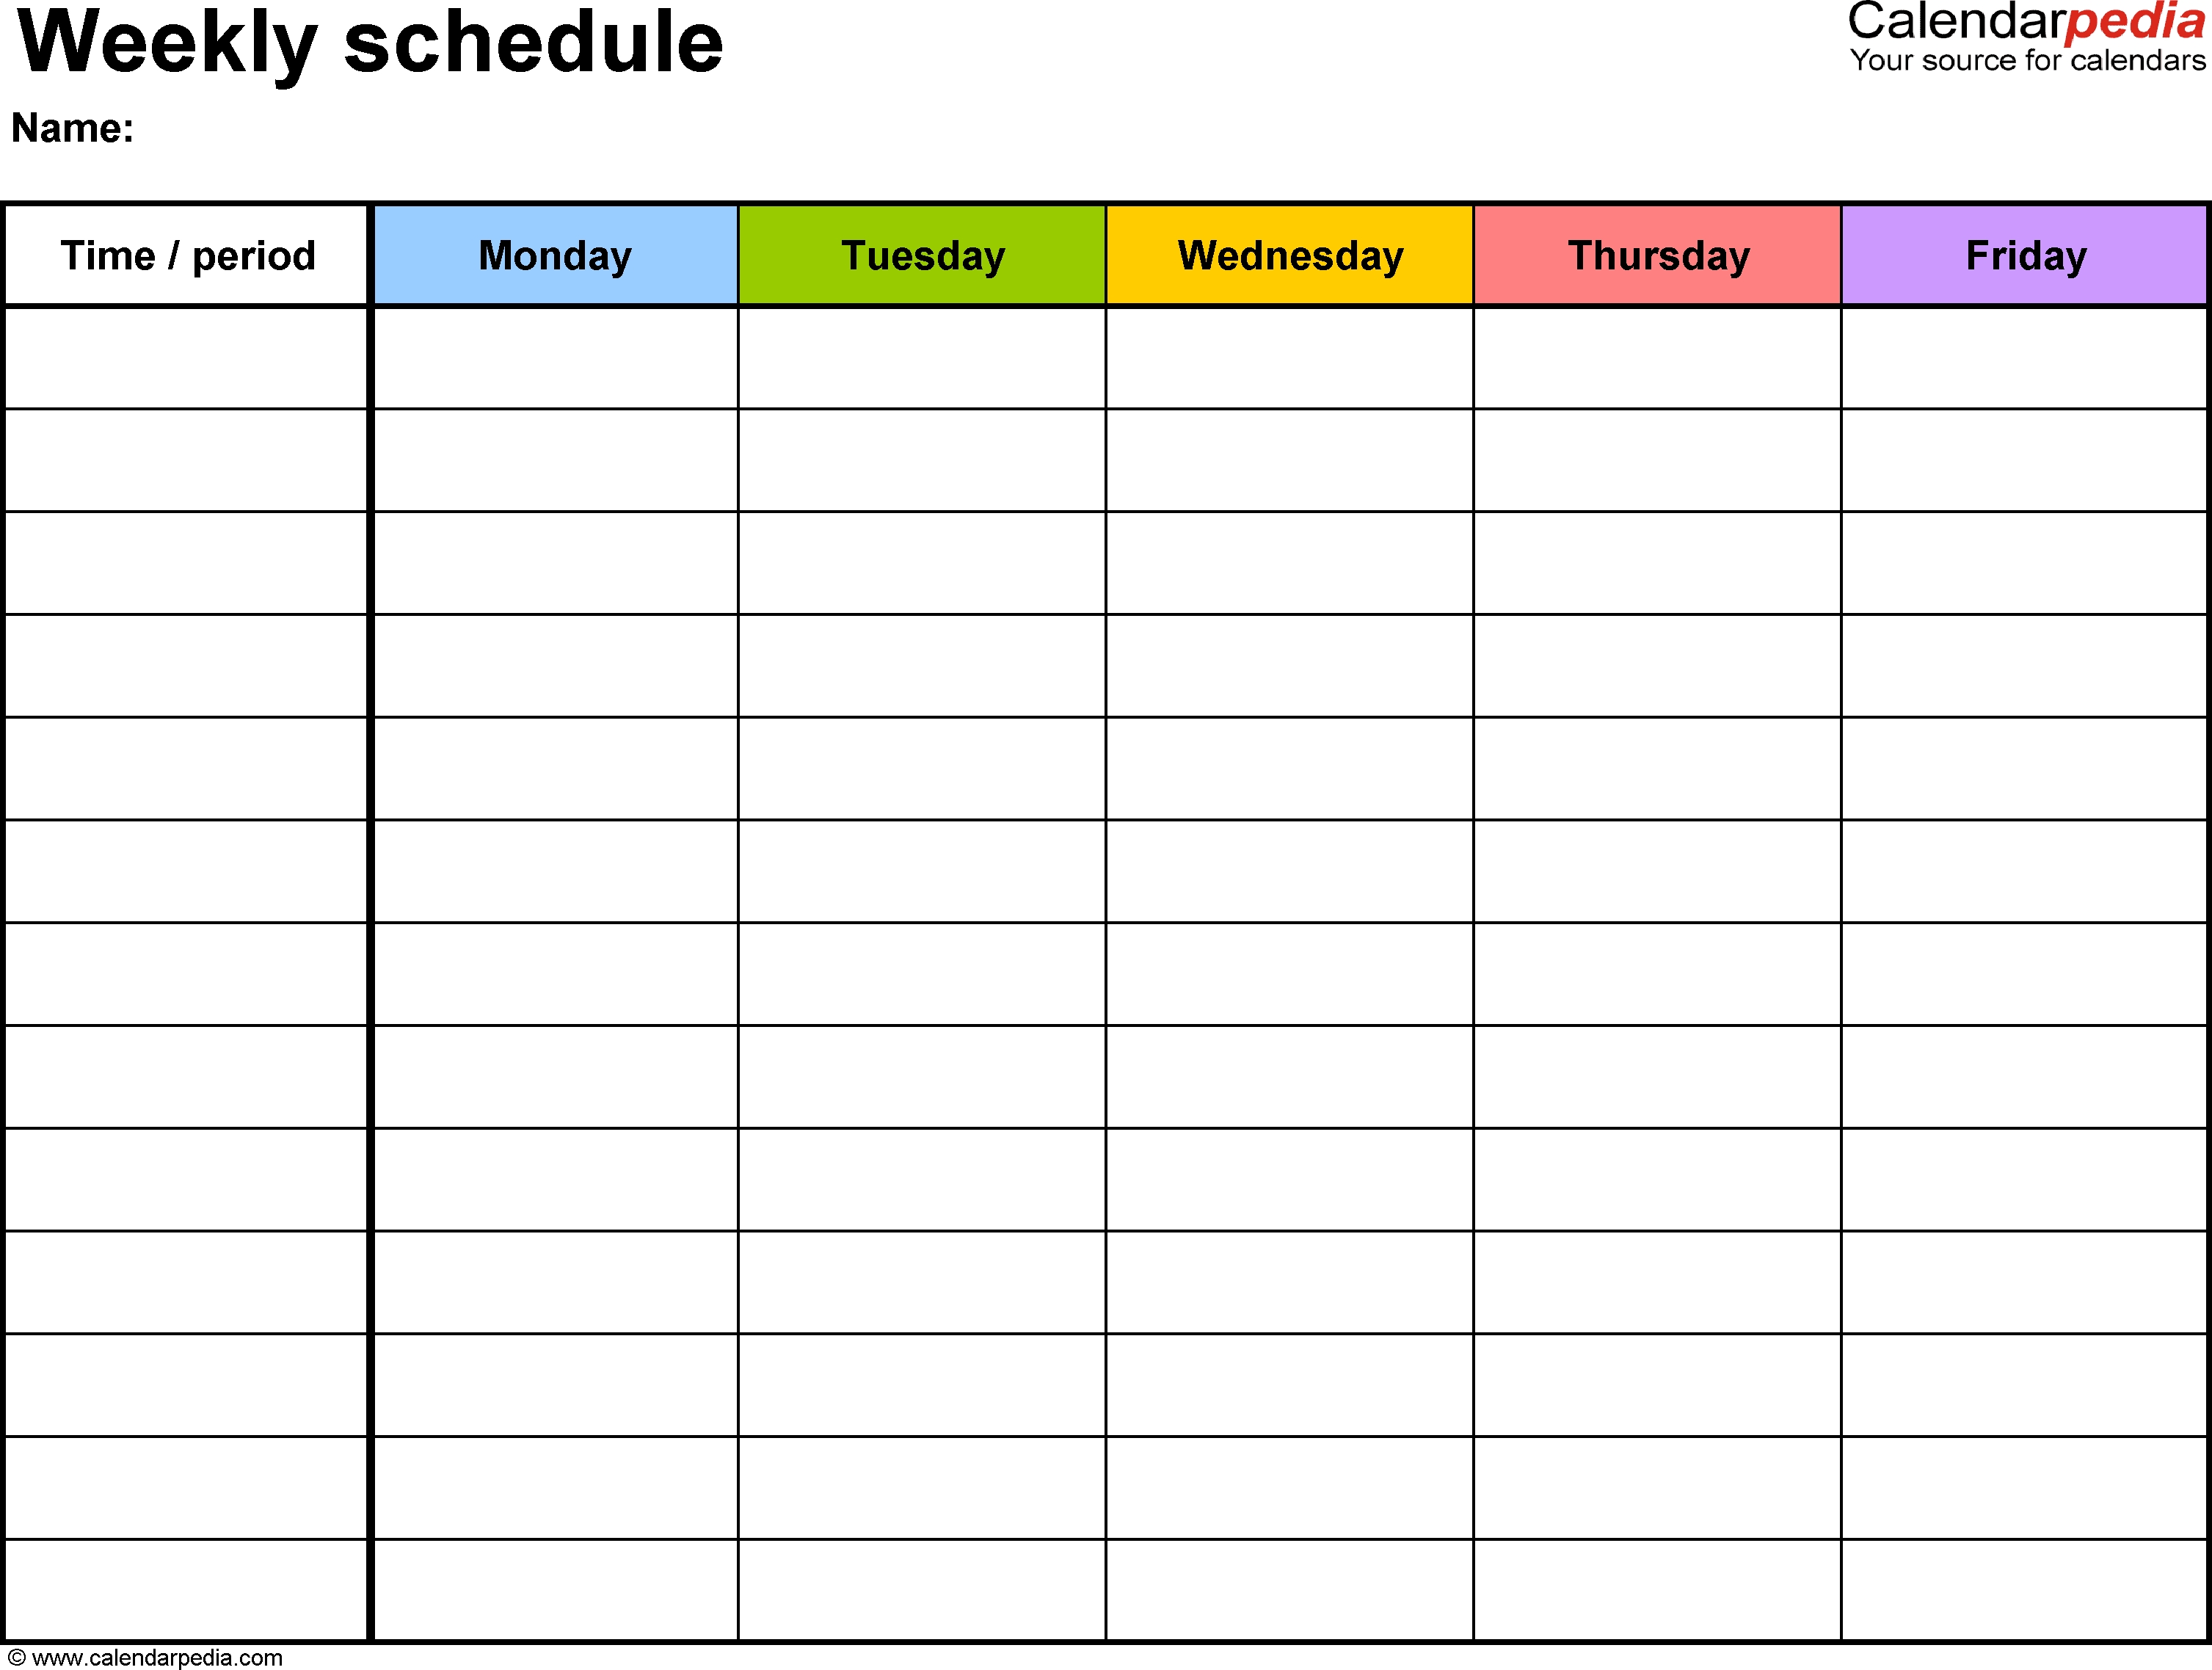 Free Weekly Schedule Templates For Word - 18 Templates-Monday Wednesday Friday Schedule Template